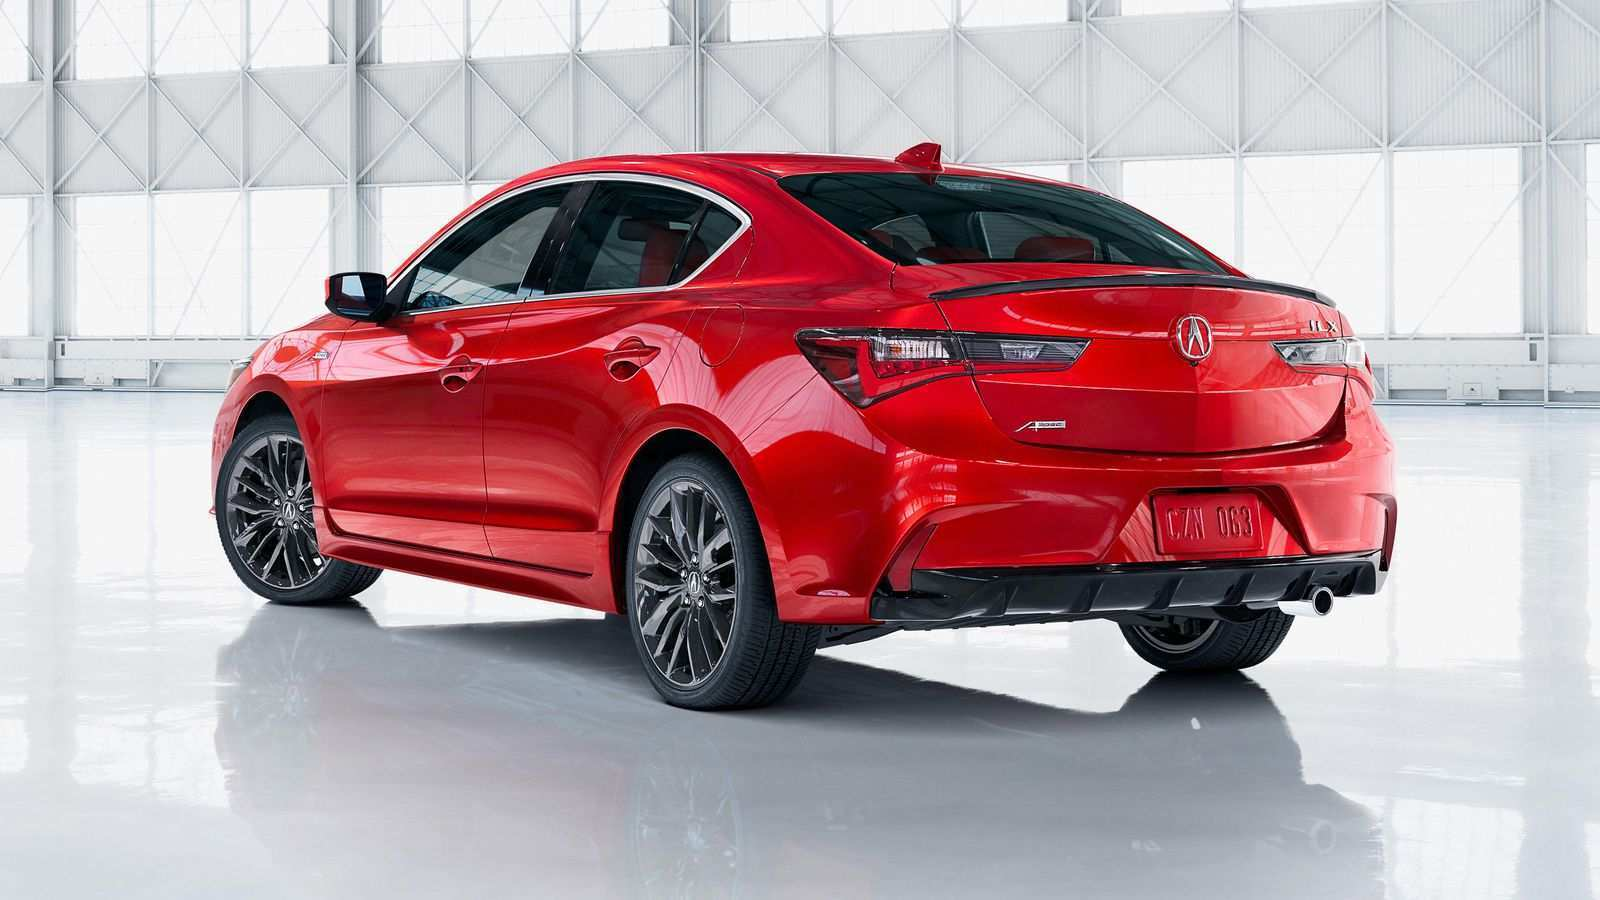 85 The Acura Hatchback 2019 Research New with Acura Hatchback 2019